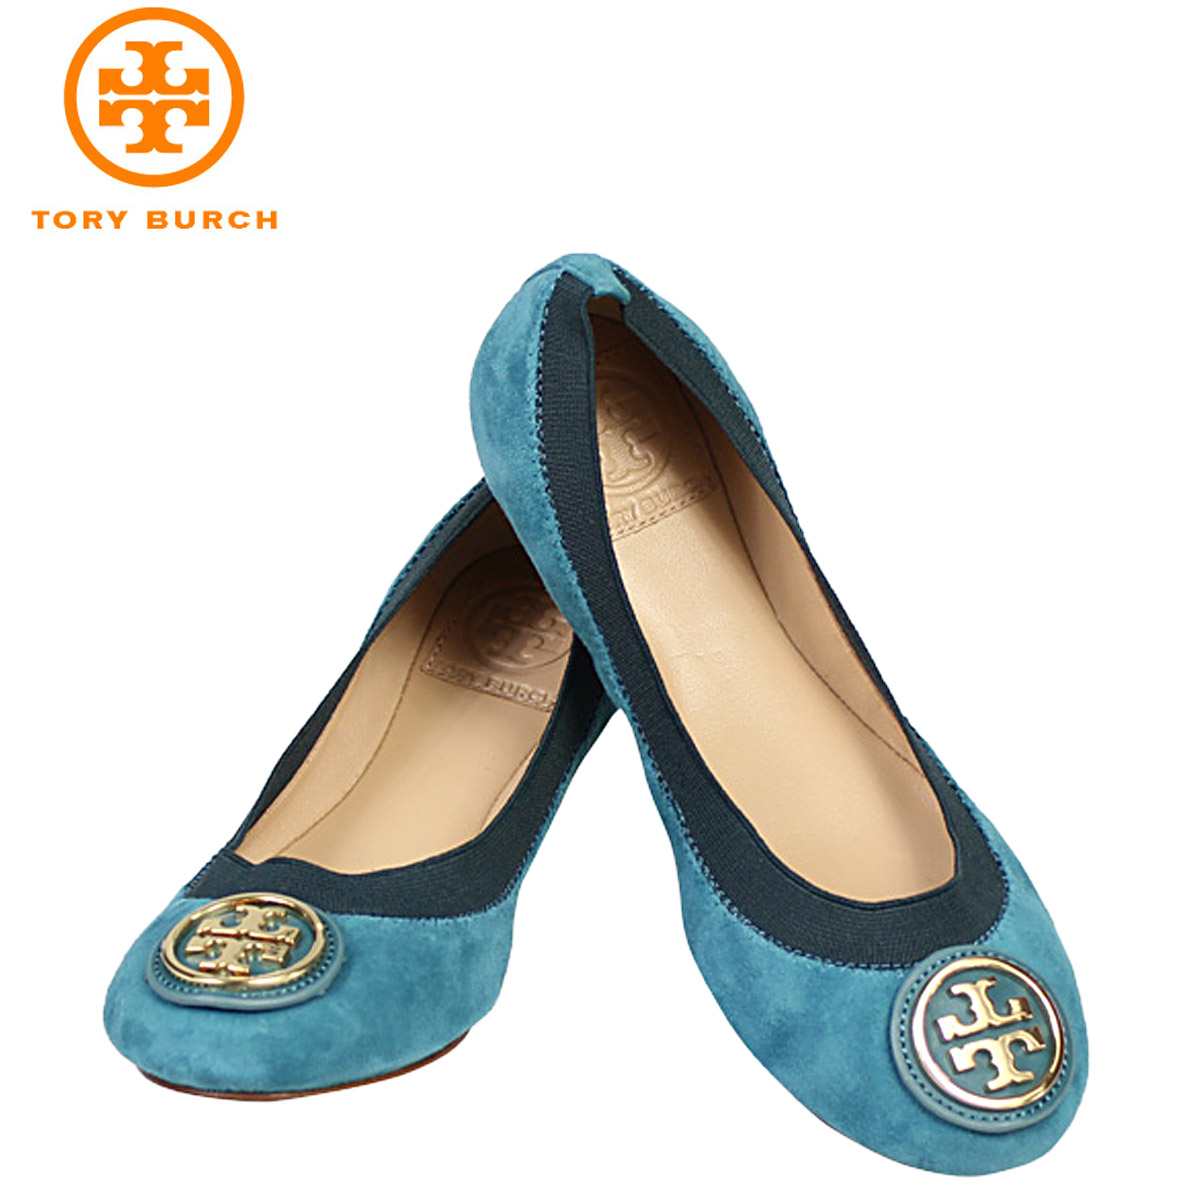 Tory Burch's luxury brands at affordable based on various sensory and  classic American sportswear. Originally developed by price can be worn by  women of all ...